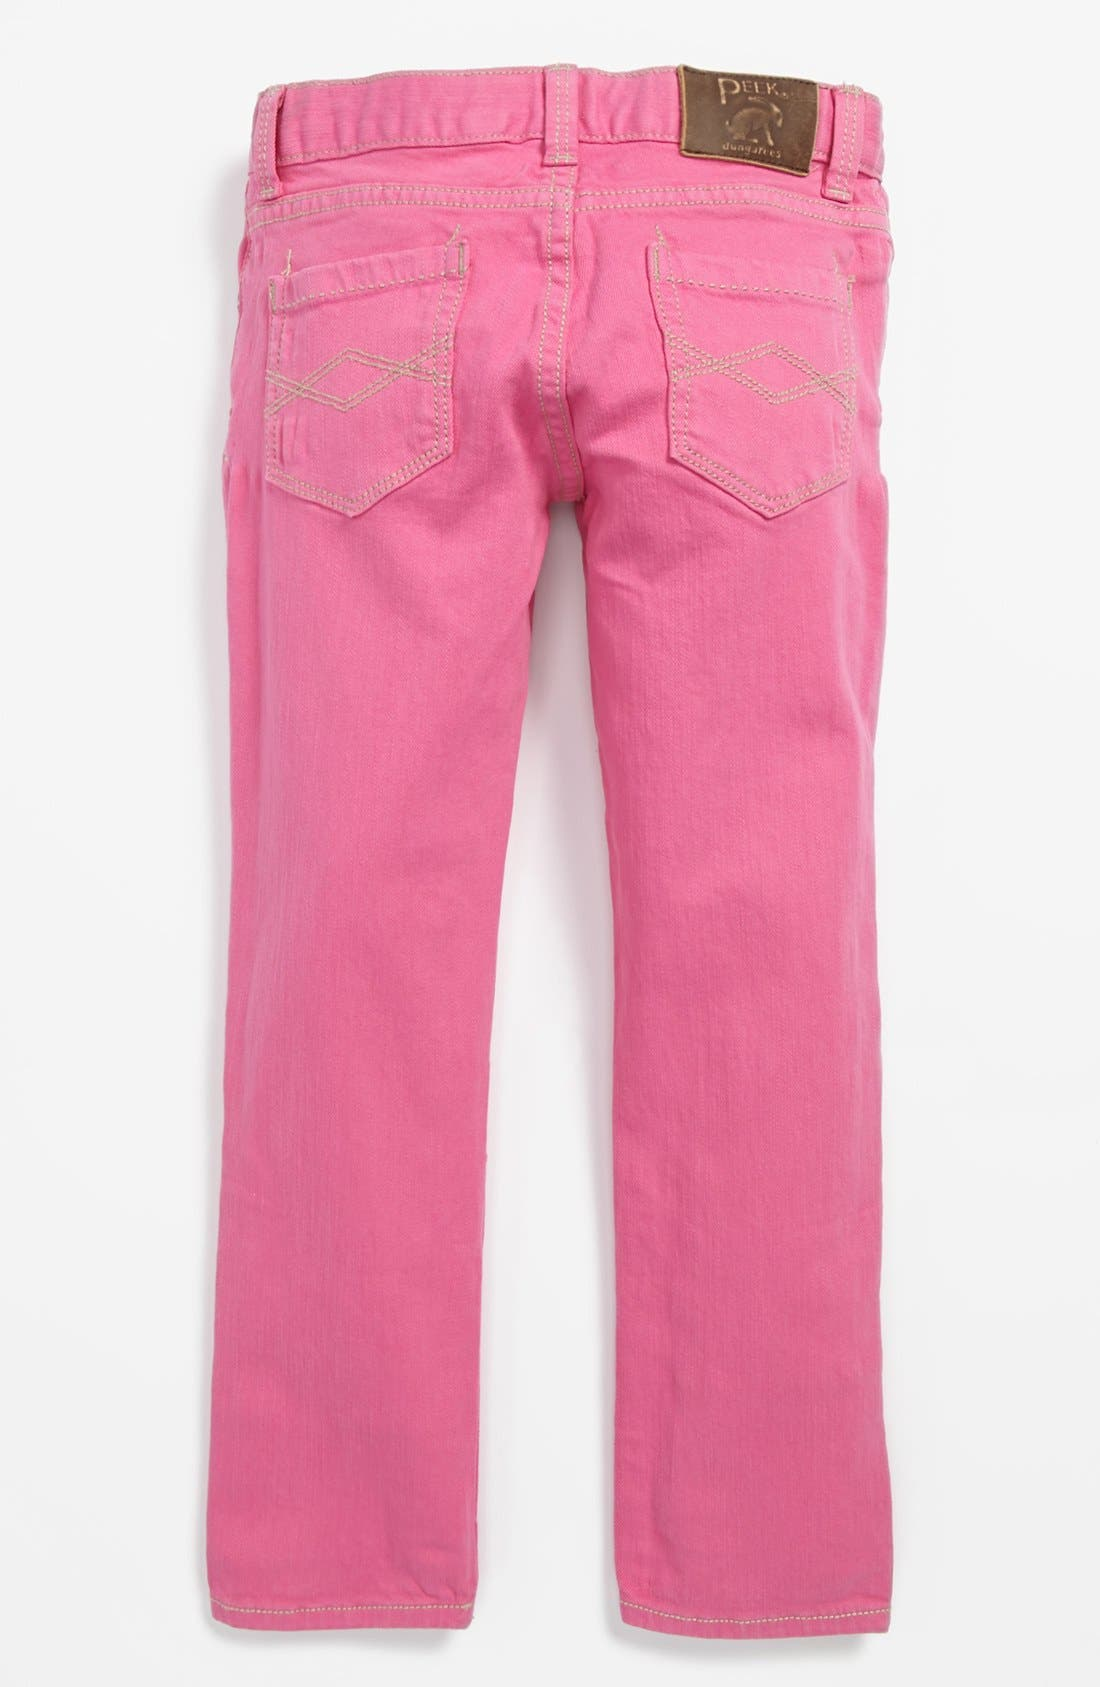 Alternate Image 1 Selected - Peek 'Dylan' Jeans (Toddler Girls, Little Girls & Big Girls)